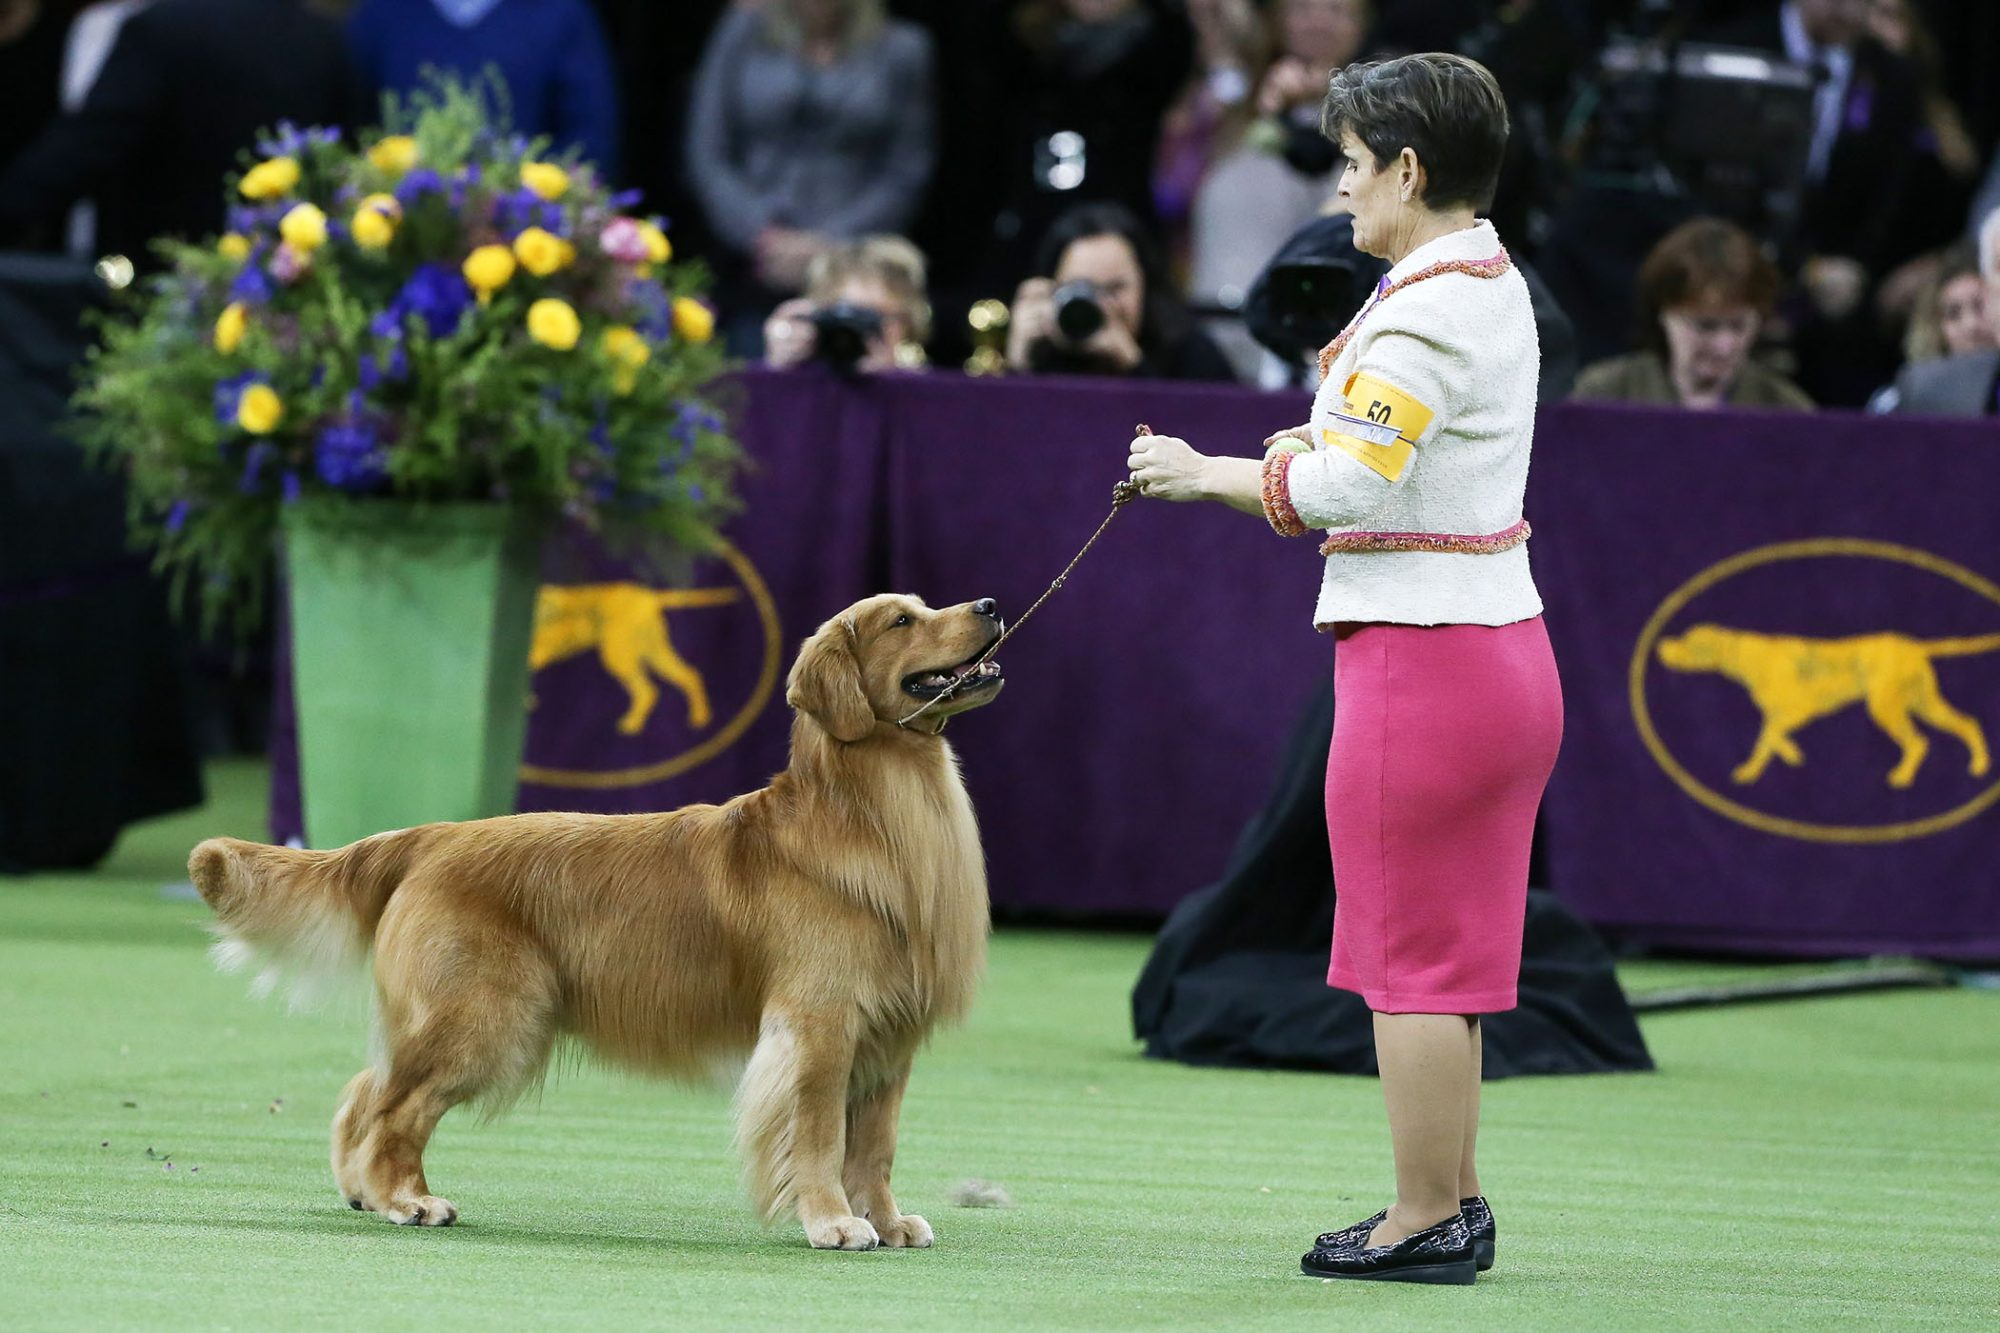 golden retriever Daniel competing at Westminster Dog Show